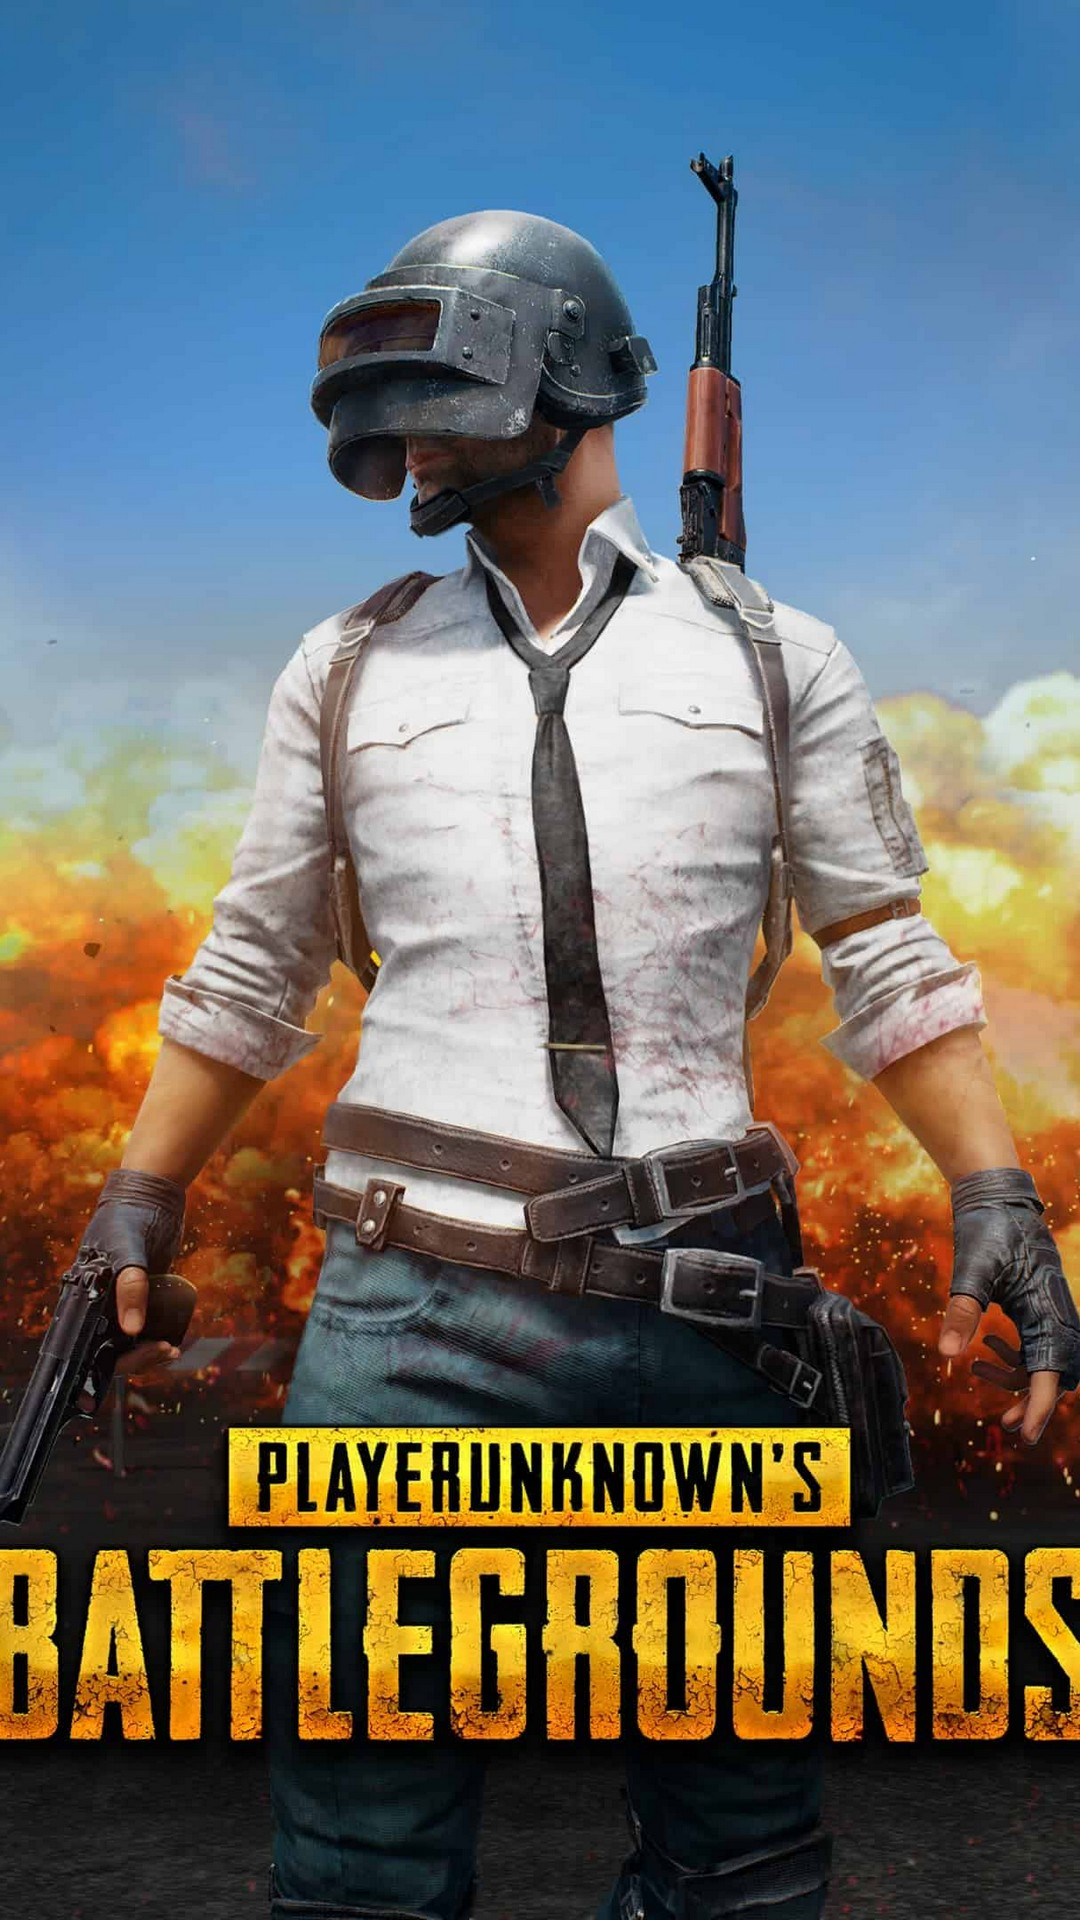 Pubg Mobile Iphone 6 Wallpaper With Image Resolution - Free Fire And Pubg , HD Wallpaper & Backgrounds